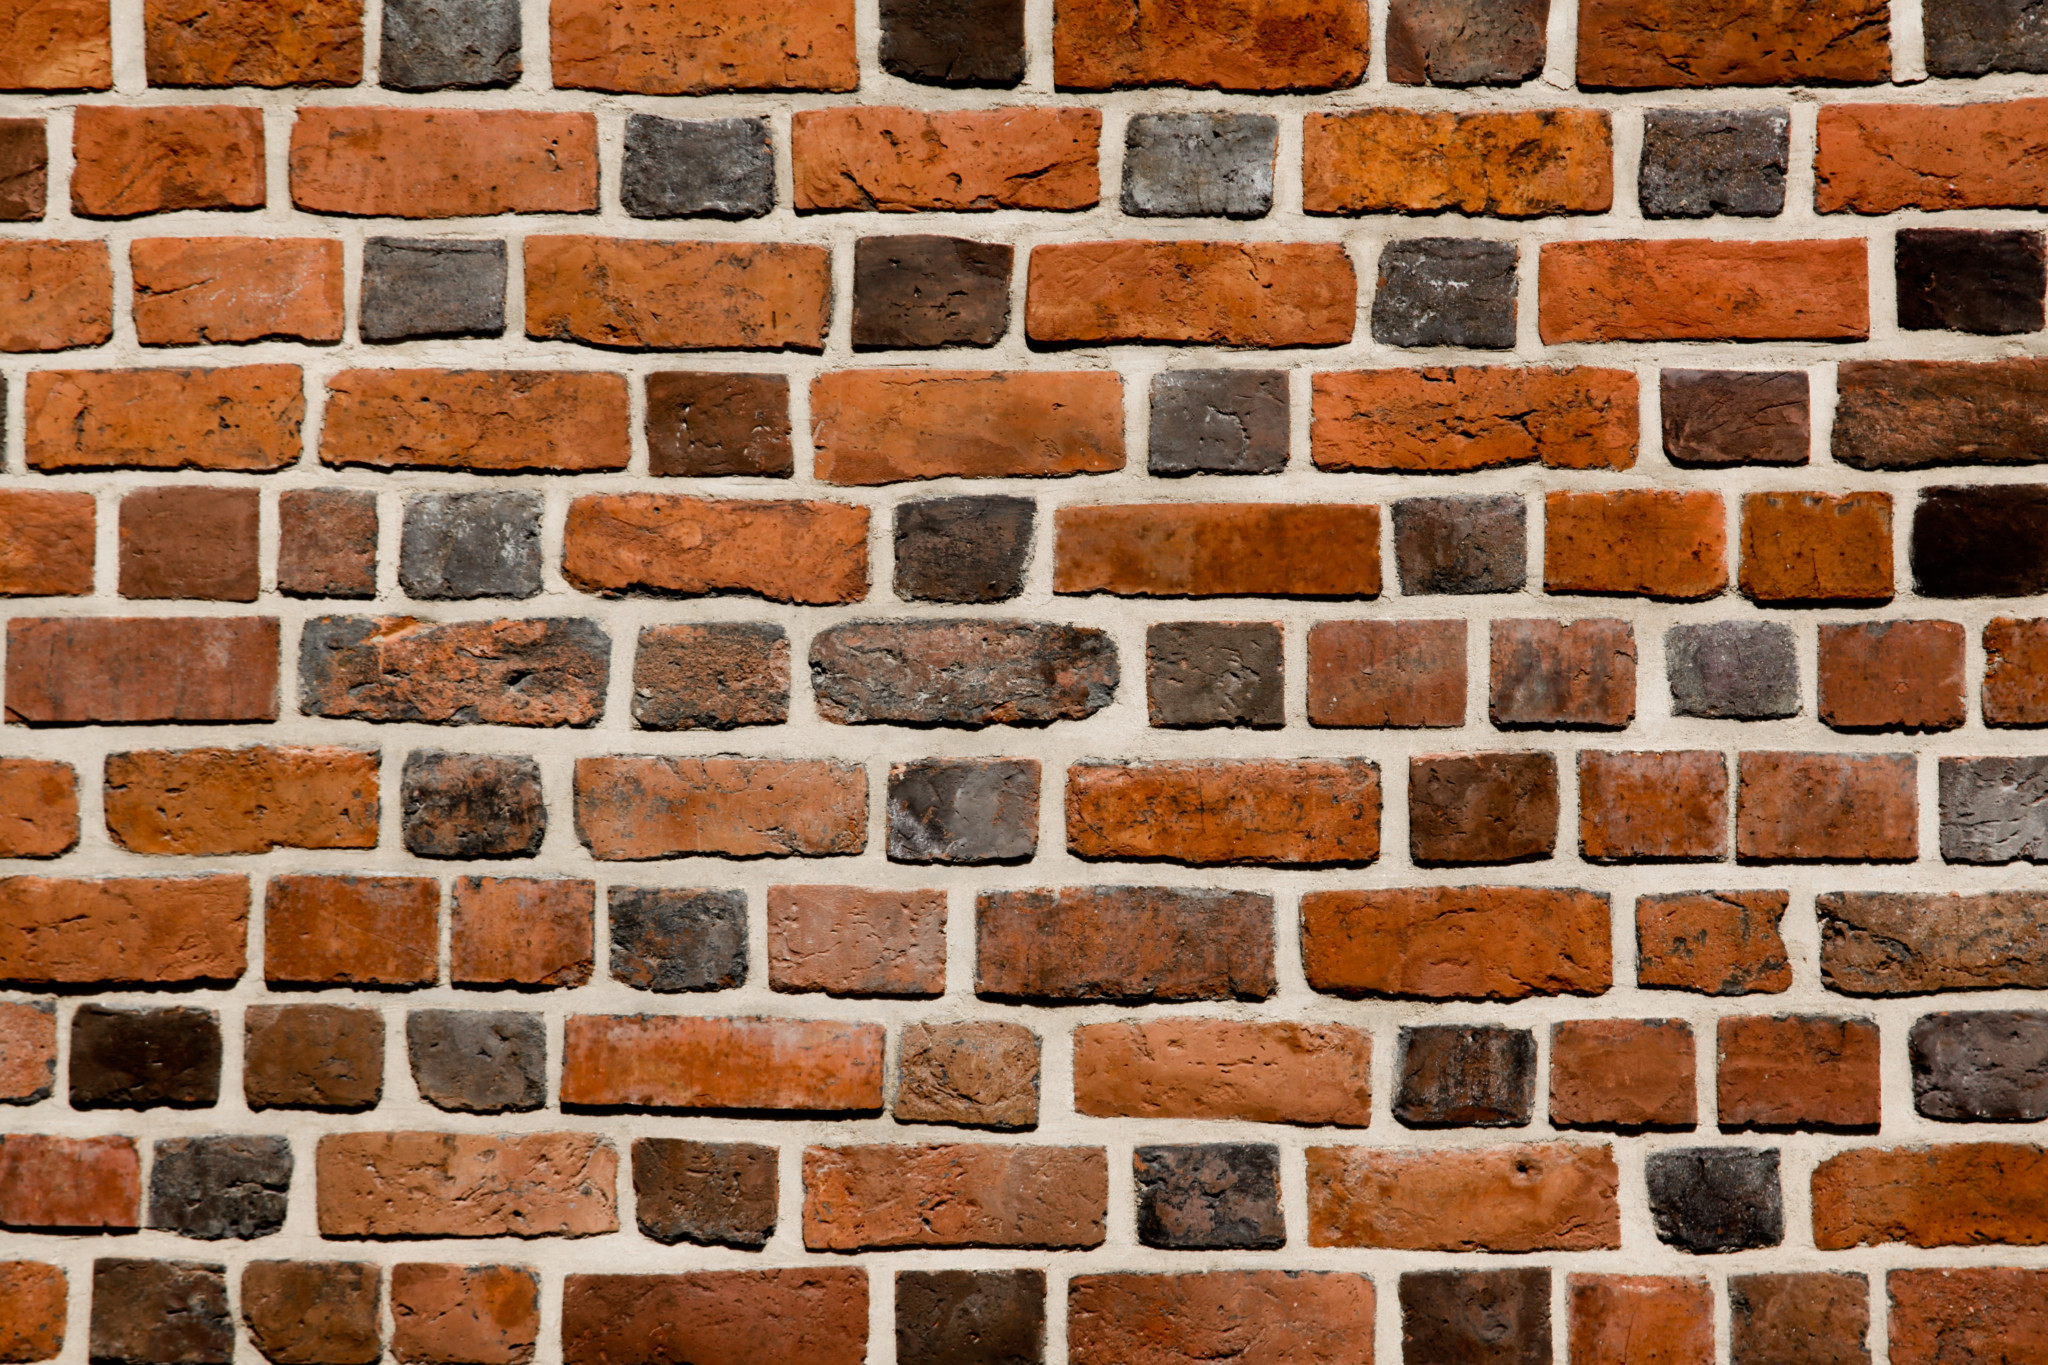 Brick and Mortar – Just another brick in the wall